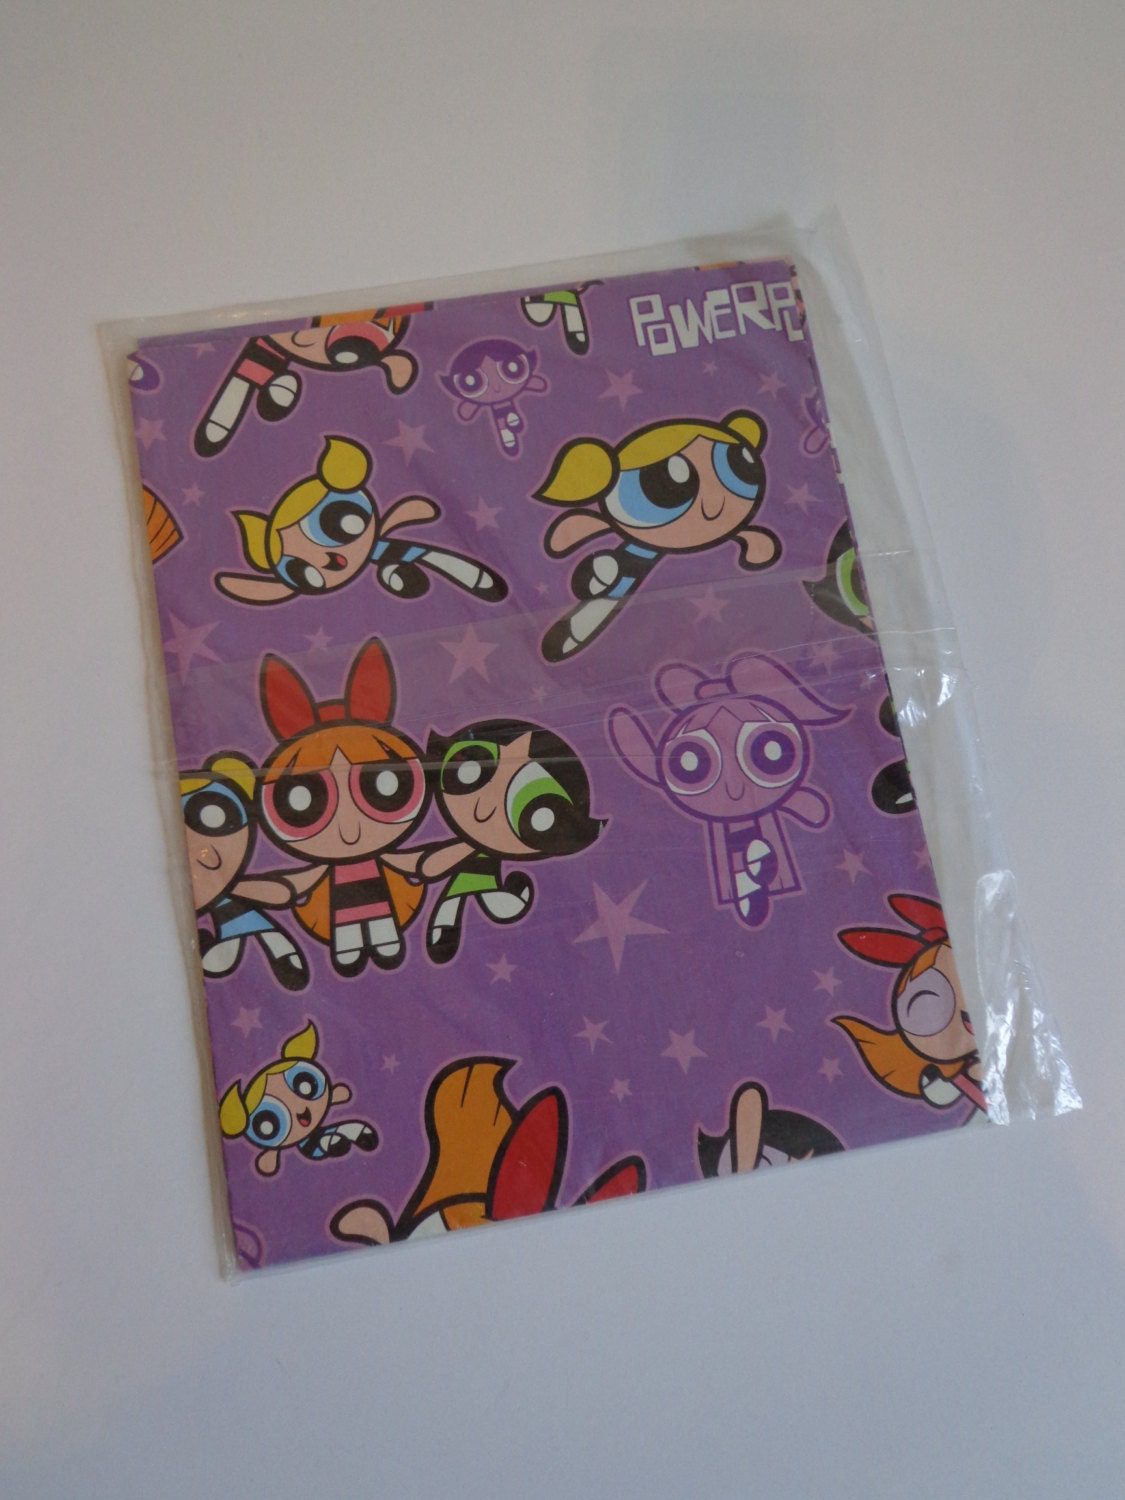 90s Powerpuff Girls Cartoon Wrapping Paper By American Greetings